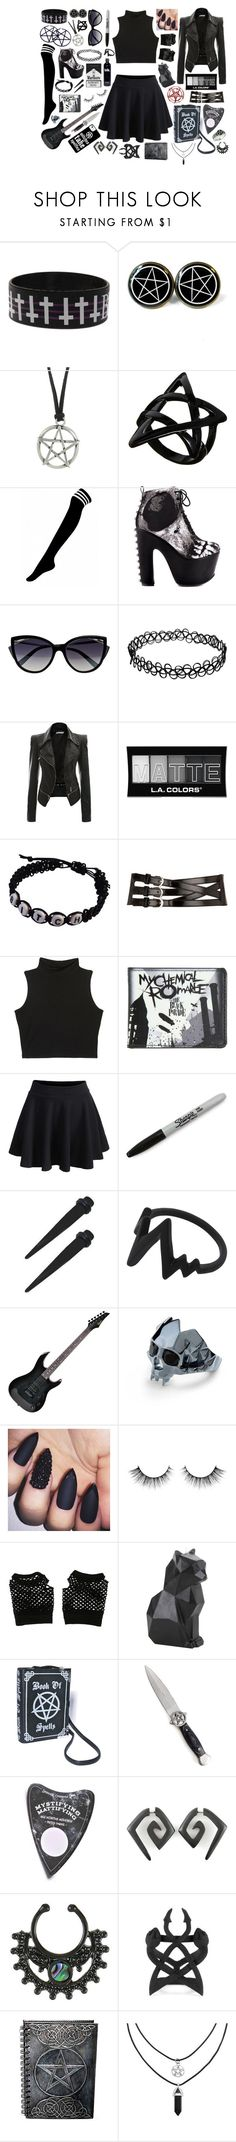 """""""Weekend clothes"""" by frankie-and-gee ❤ liked on Polyvore featuring Hot Topic, Killstar, ASOS, Iron Fist, La Perla, L.A. Colors, Dorothy Perkins, WithChic, Sharpie and R2"""